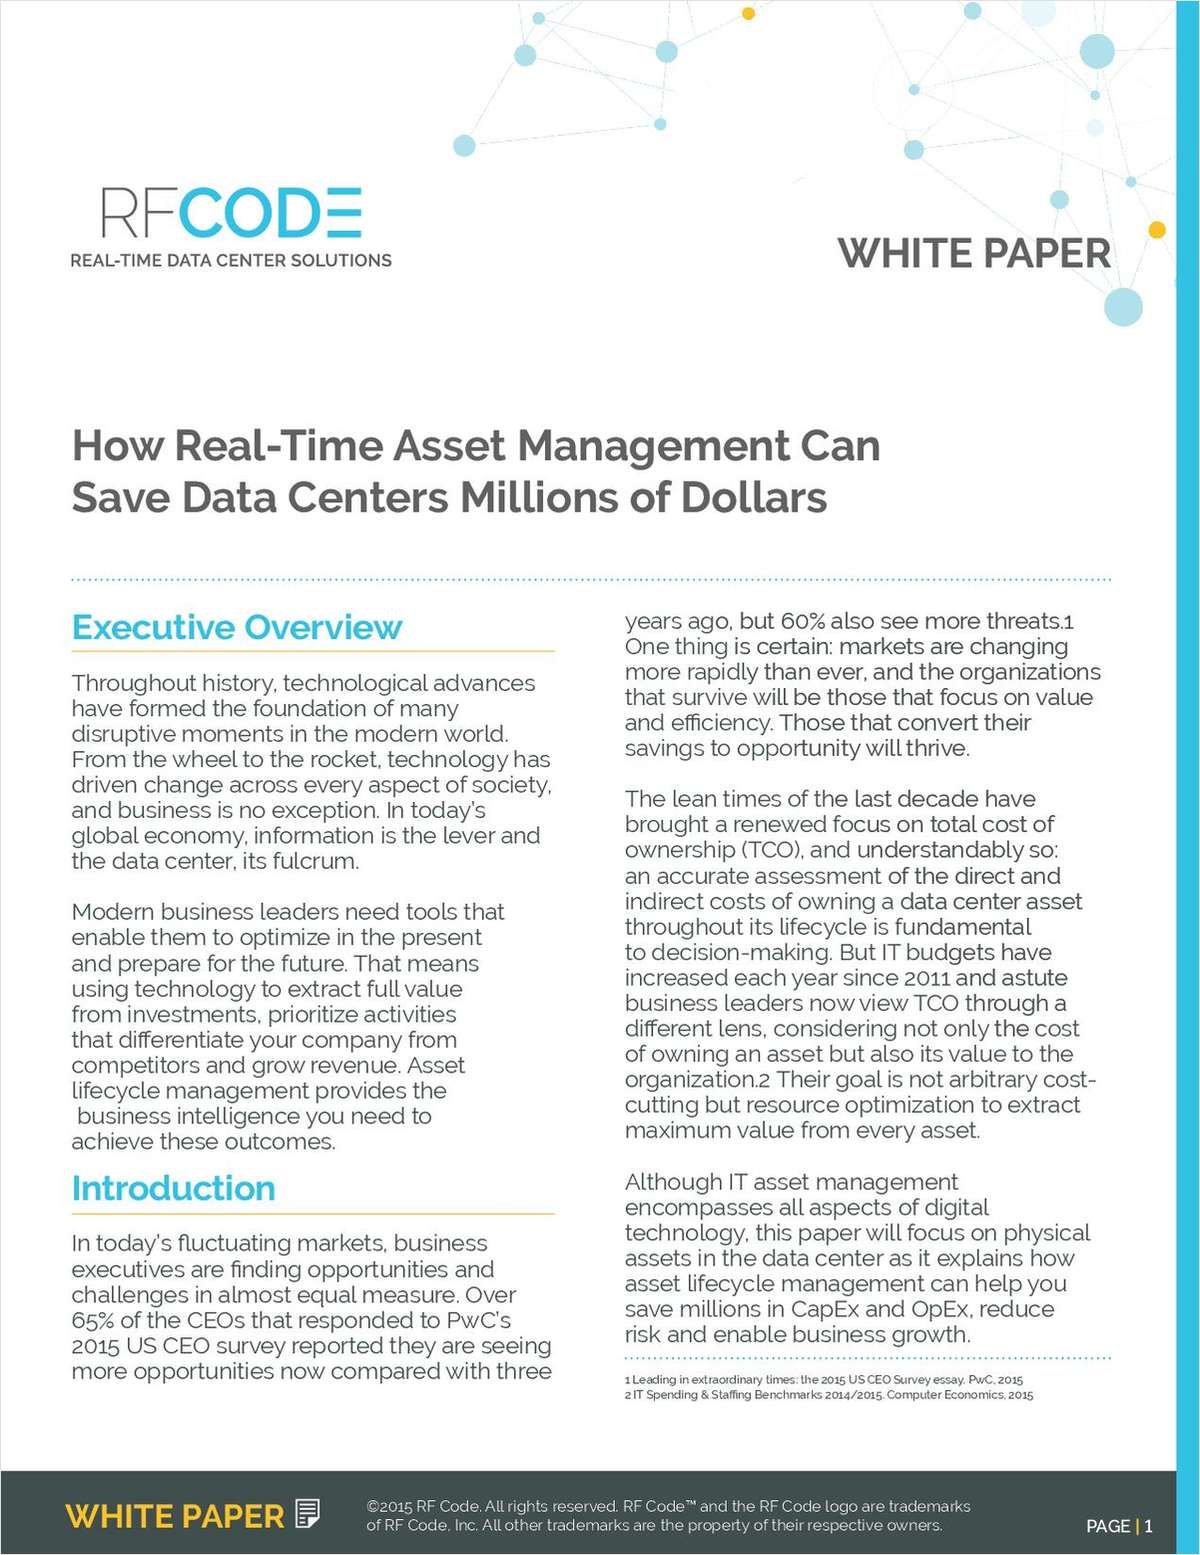 How Real-Time Asset Management Can Save Data Centers Millions of Dollars